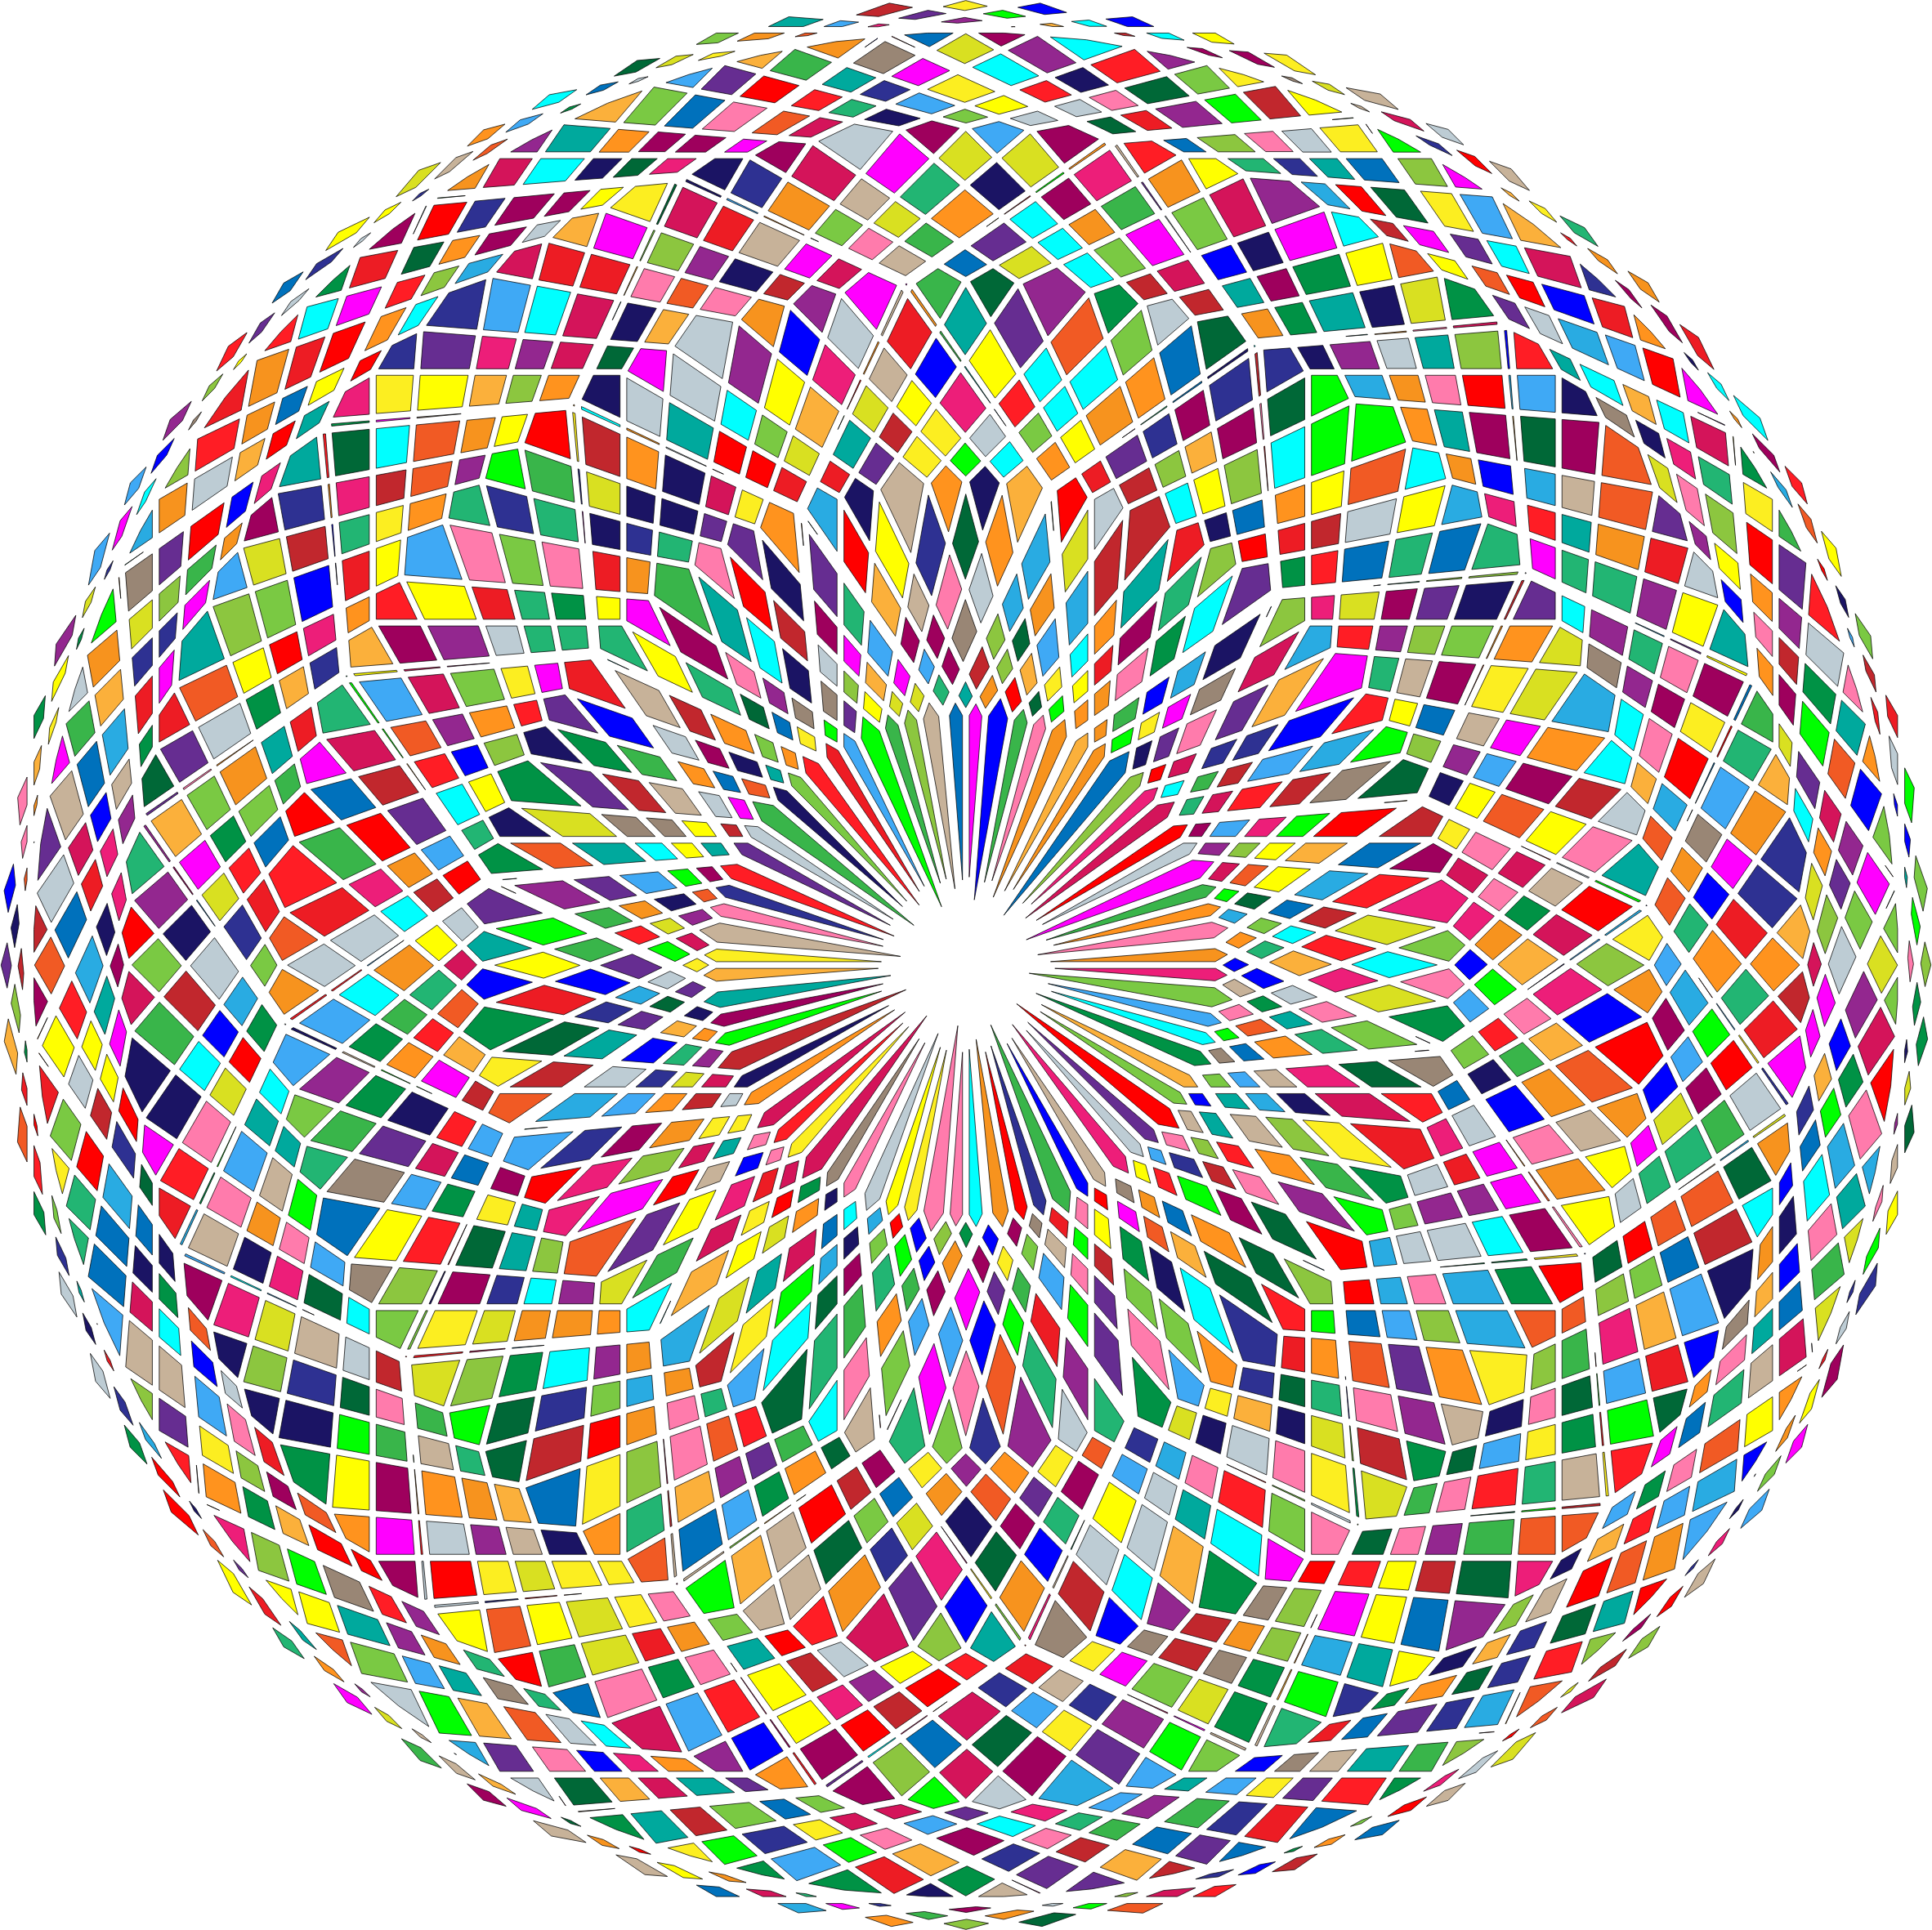 Abstract circle png. Colorful remix icons free